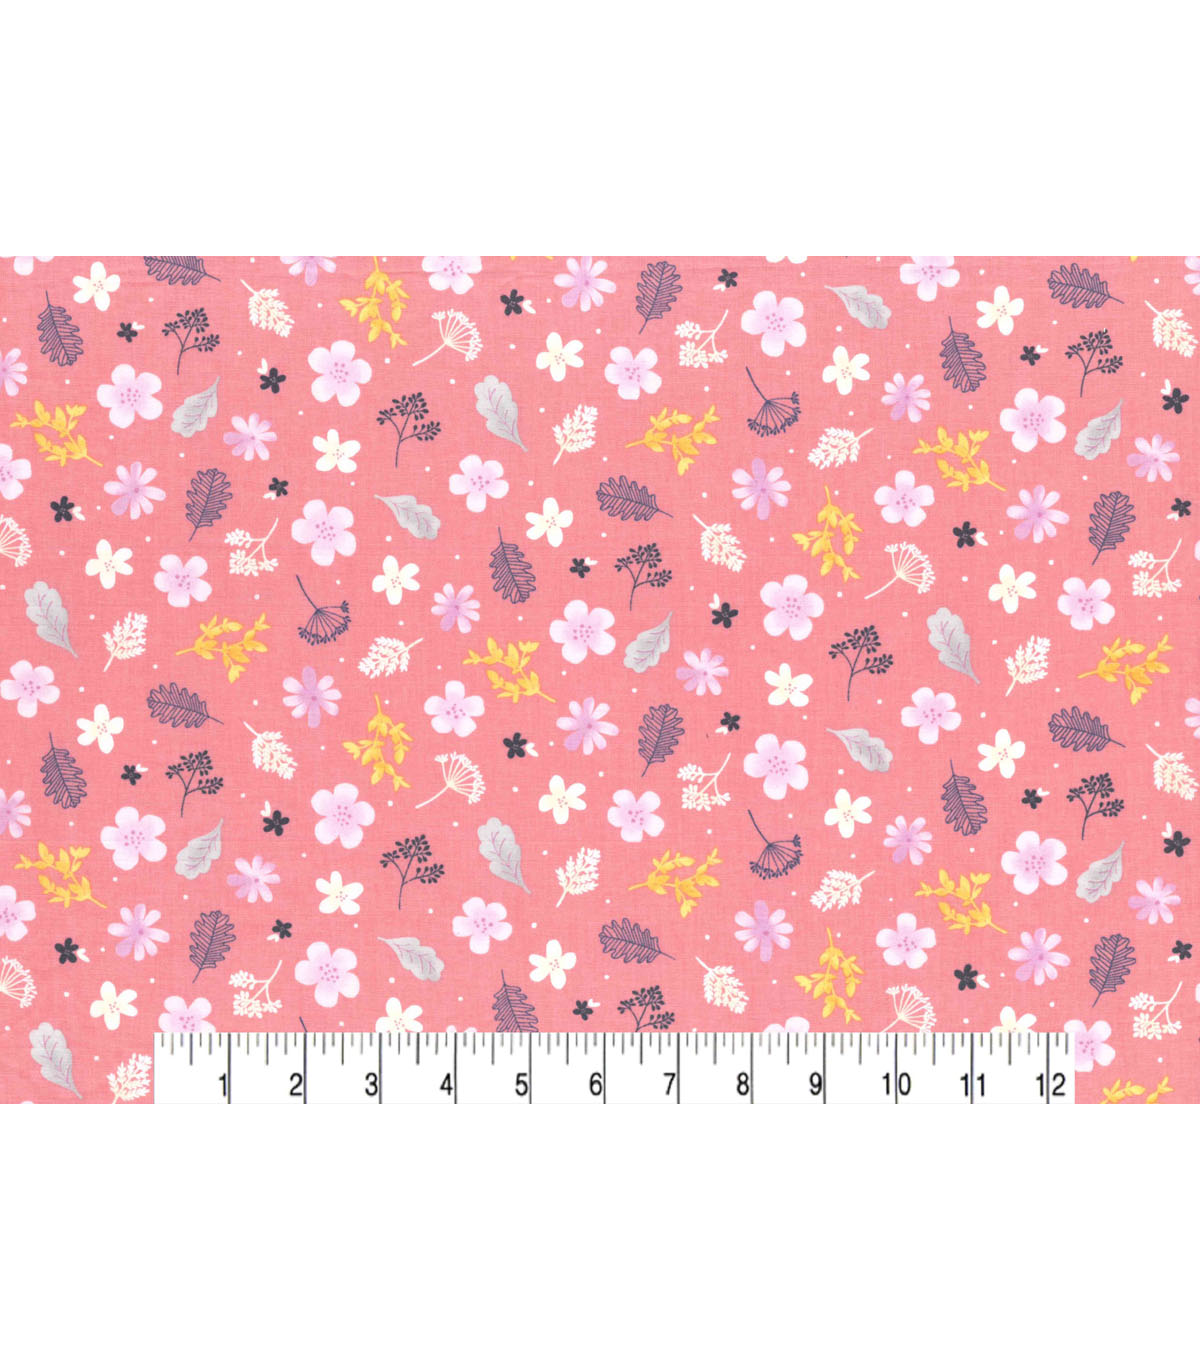 Premium Cotton Fabric 43\u0027\u0027-Astrid Garden Tossed on Pink